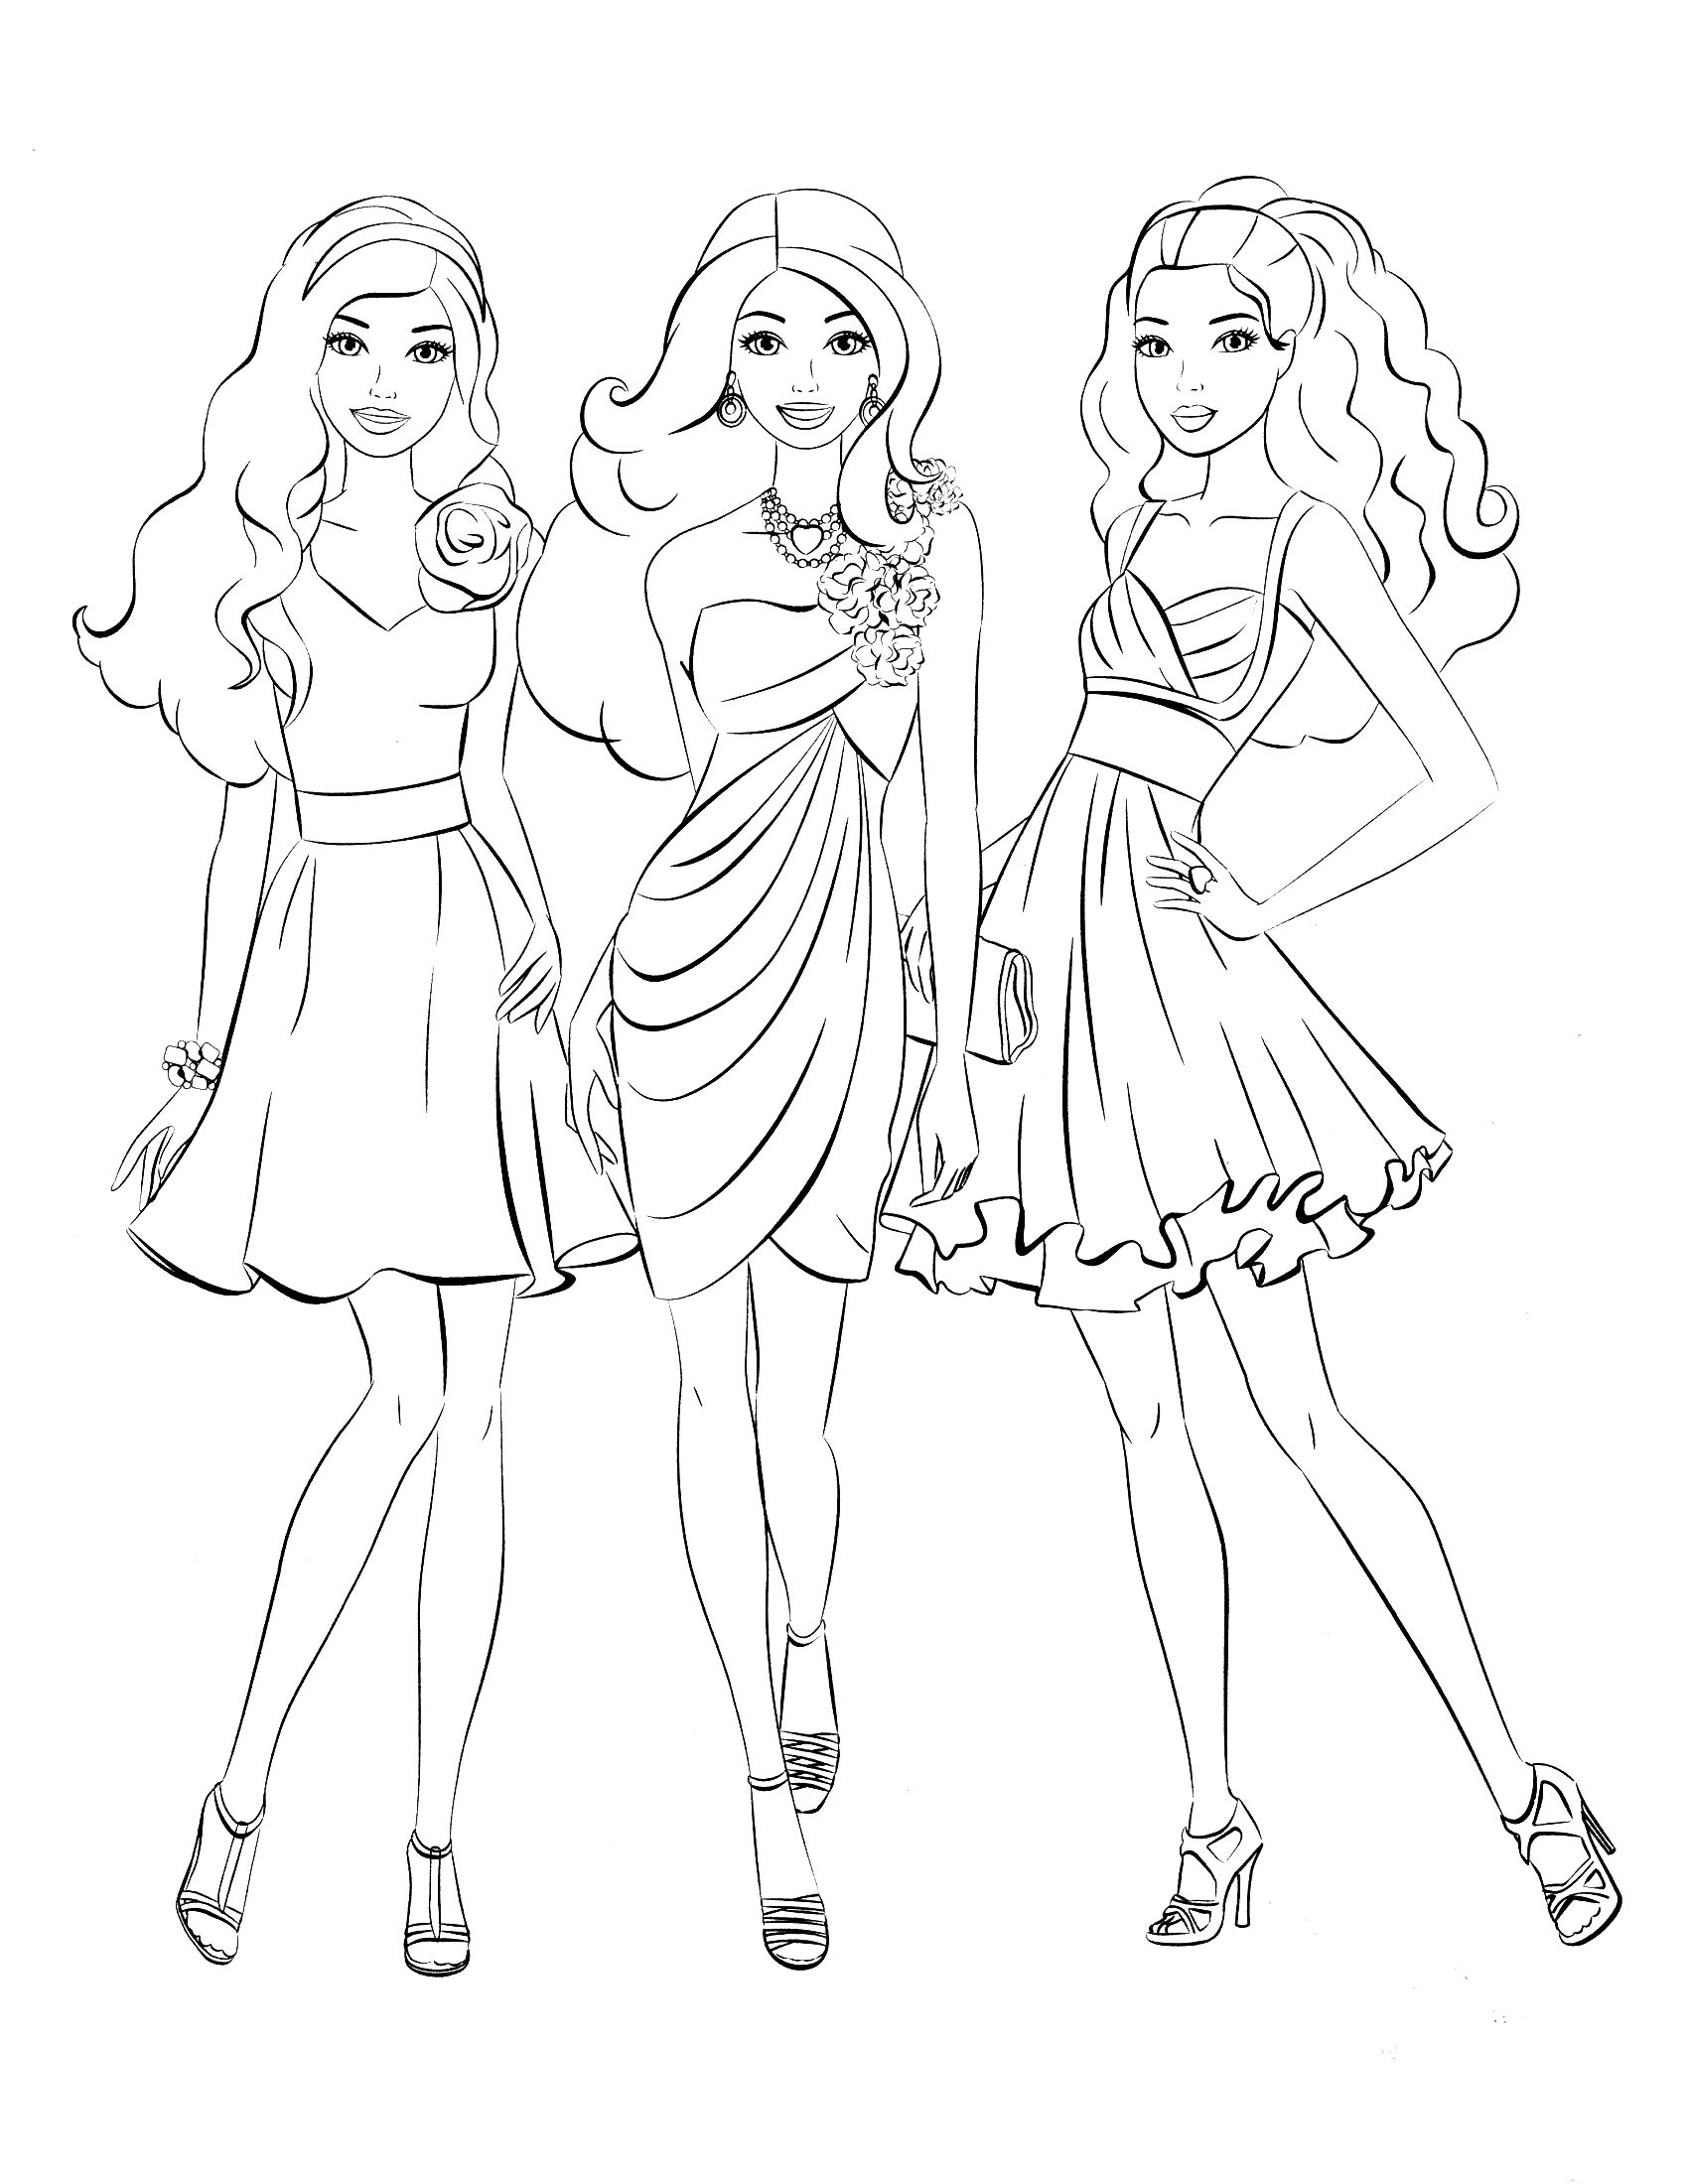 Barbie Ausmalbilder Kostenlos : Elegant Barbie Coloring Pages Free Large Images Manahil